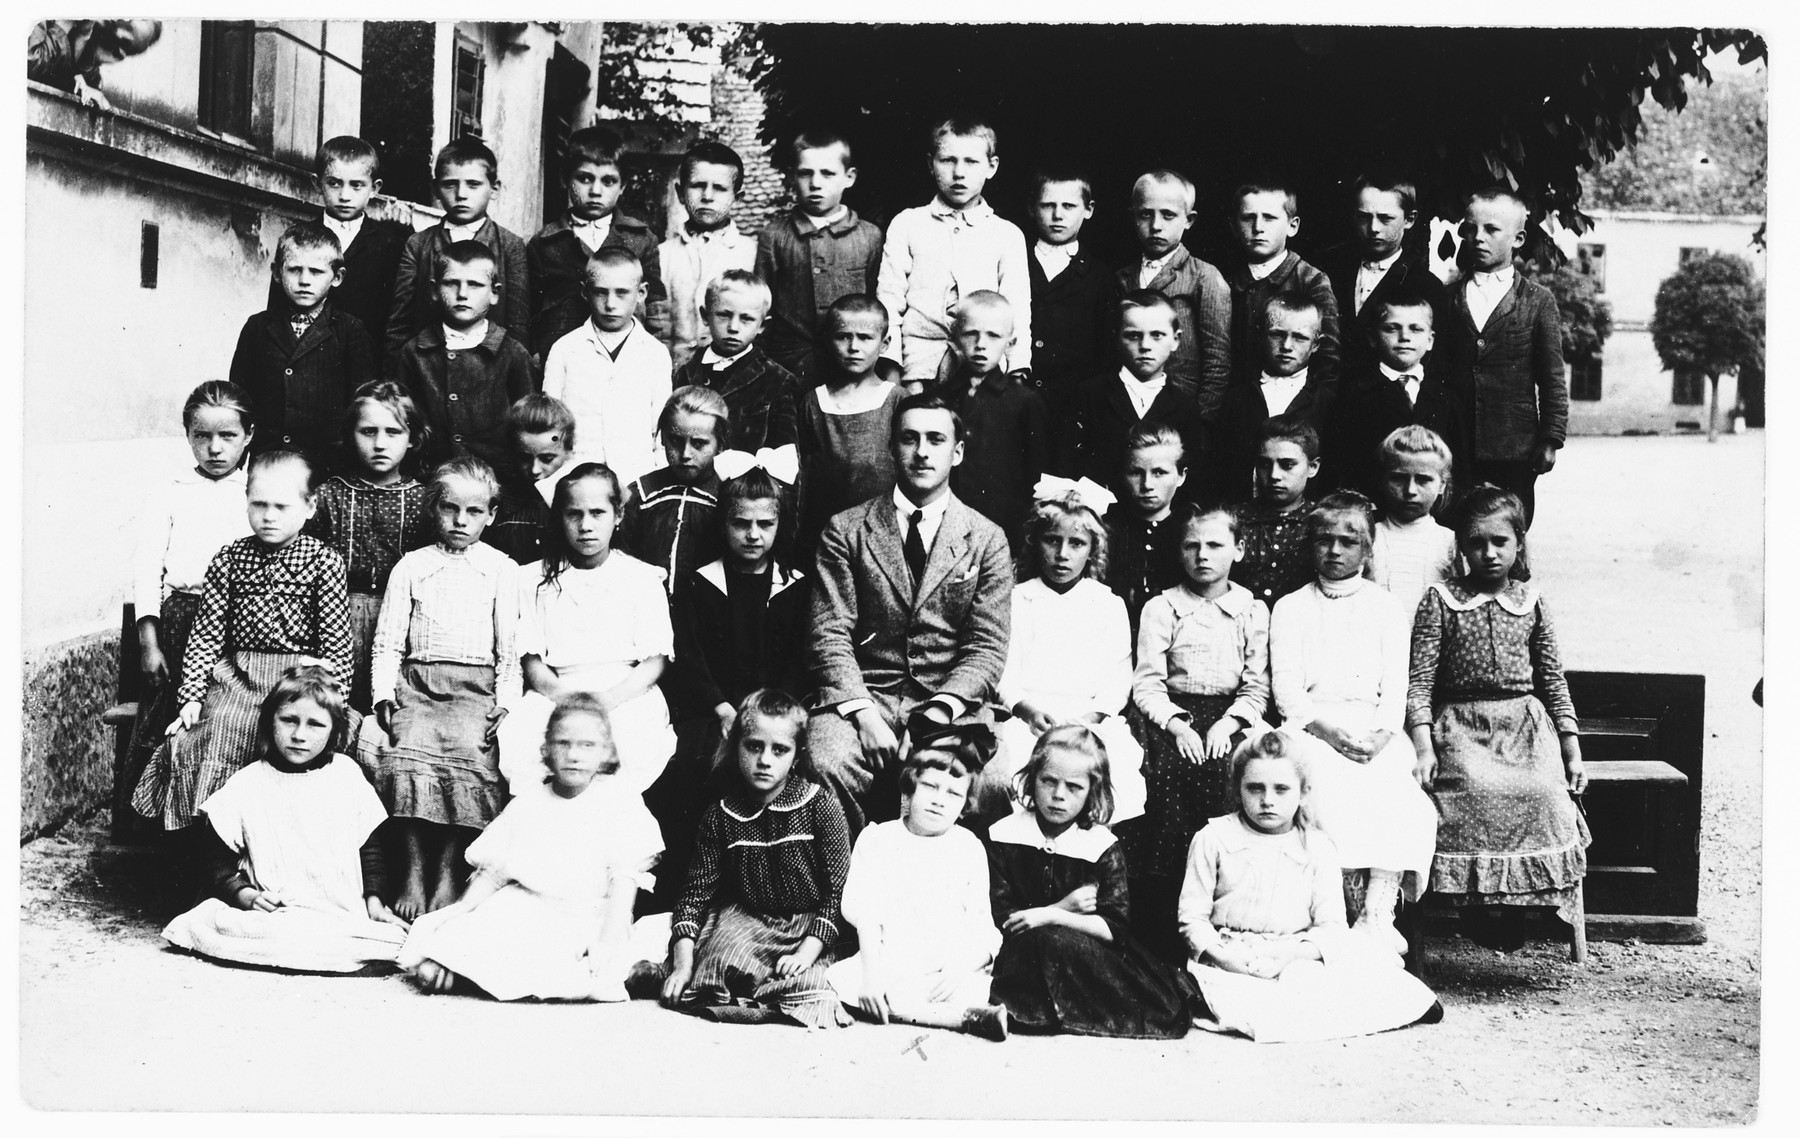 Group portrait of students in the public school in Ludbreg, Croatia.  Among those pictured is Silva Deutsch.